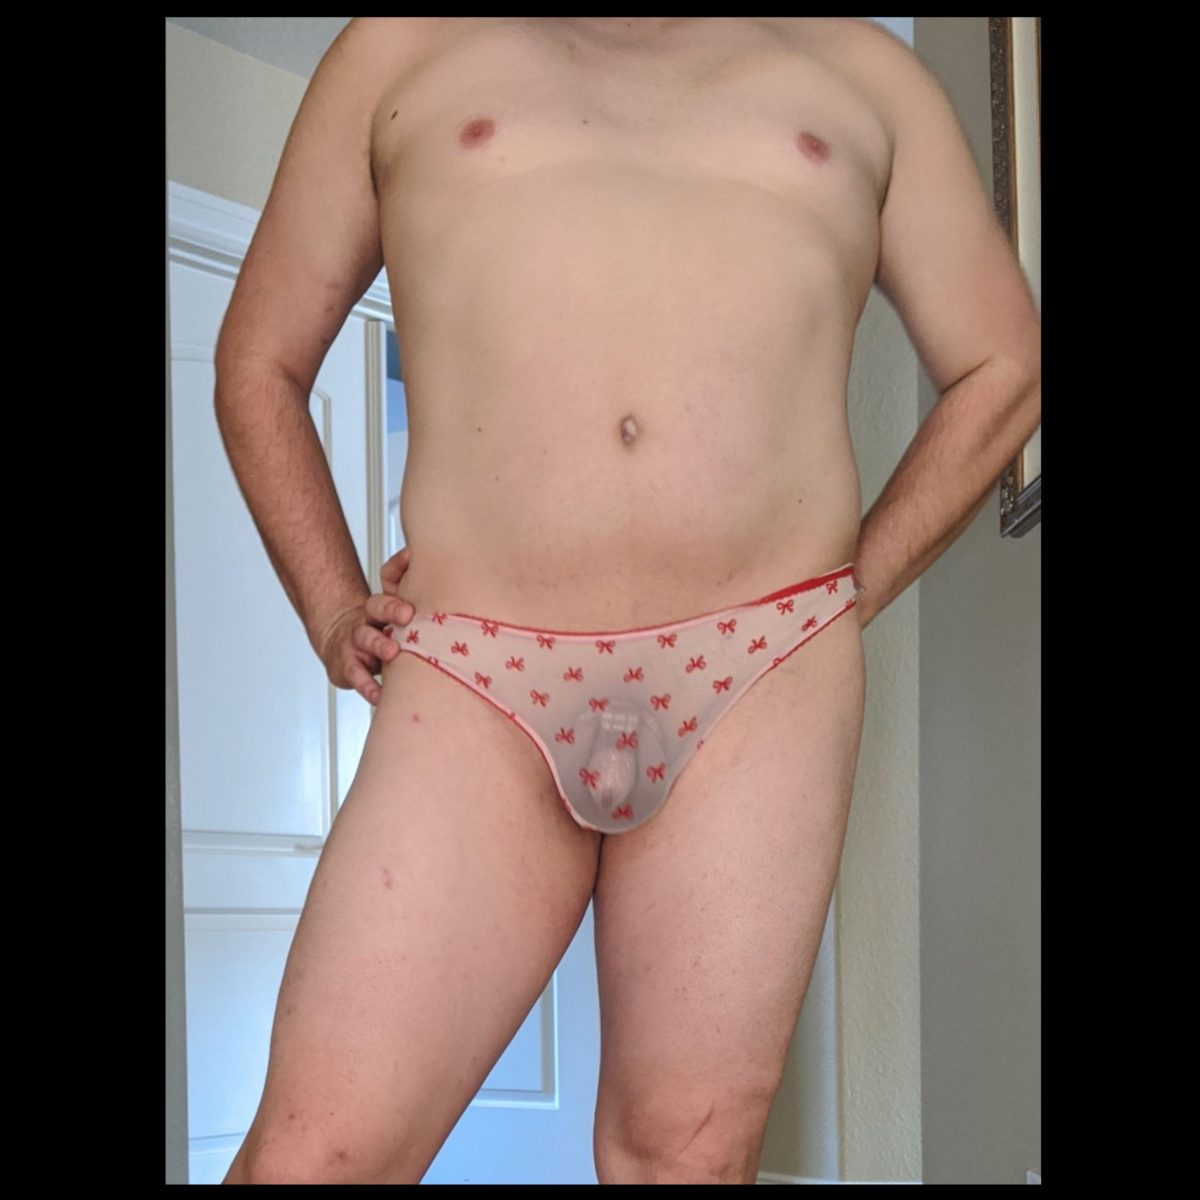 You can see his little cock cage through the panties. hahaha